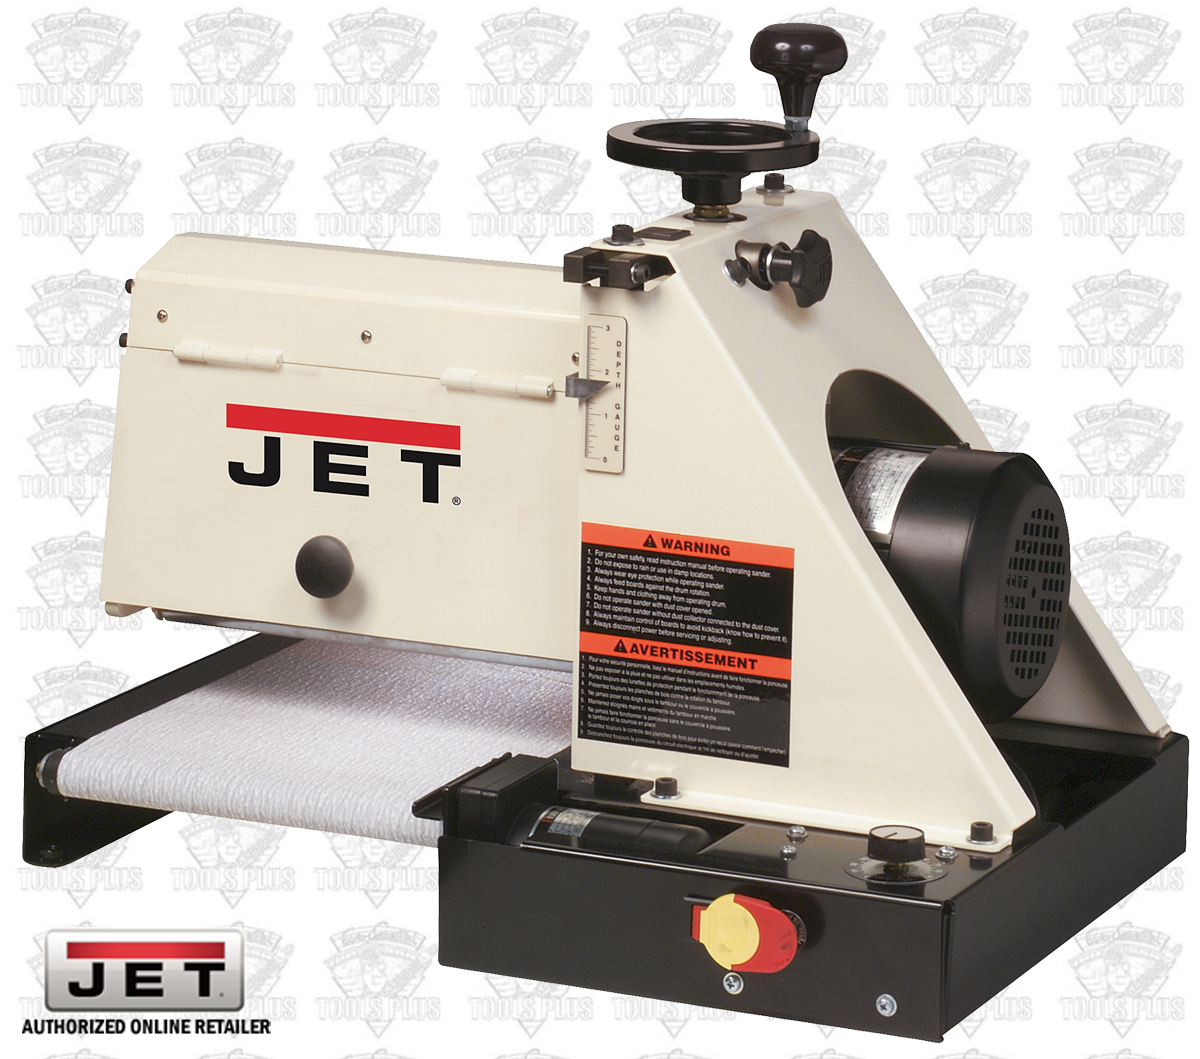 Jet 628900 10 20 Plus 1 Hp 1 Ph 115 V Benchtop Sander